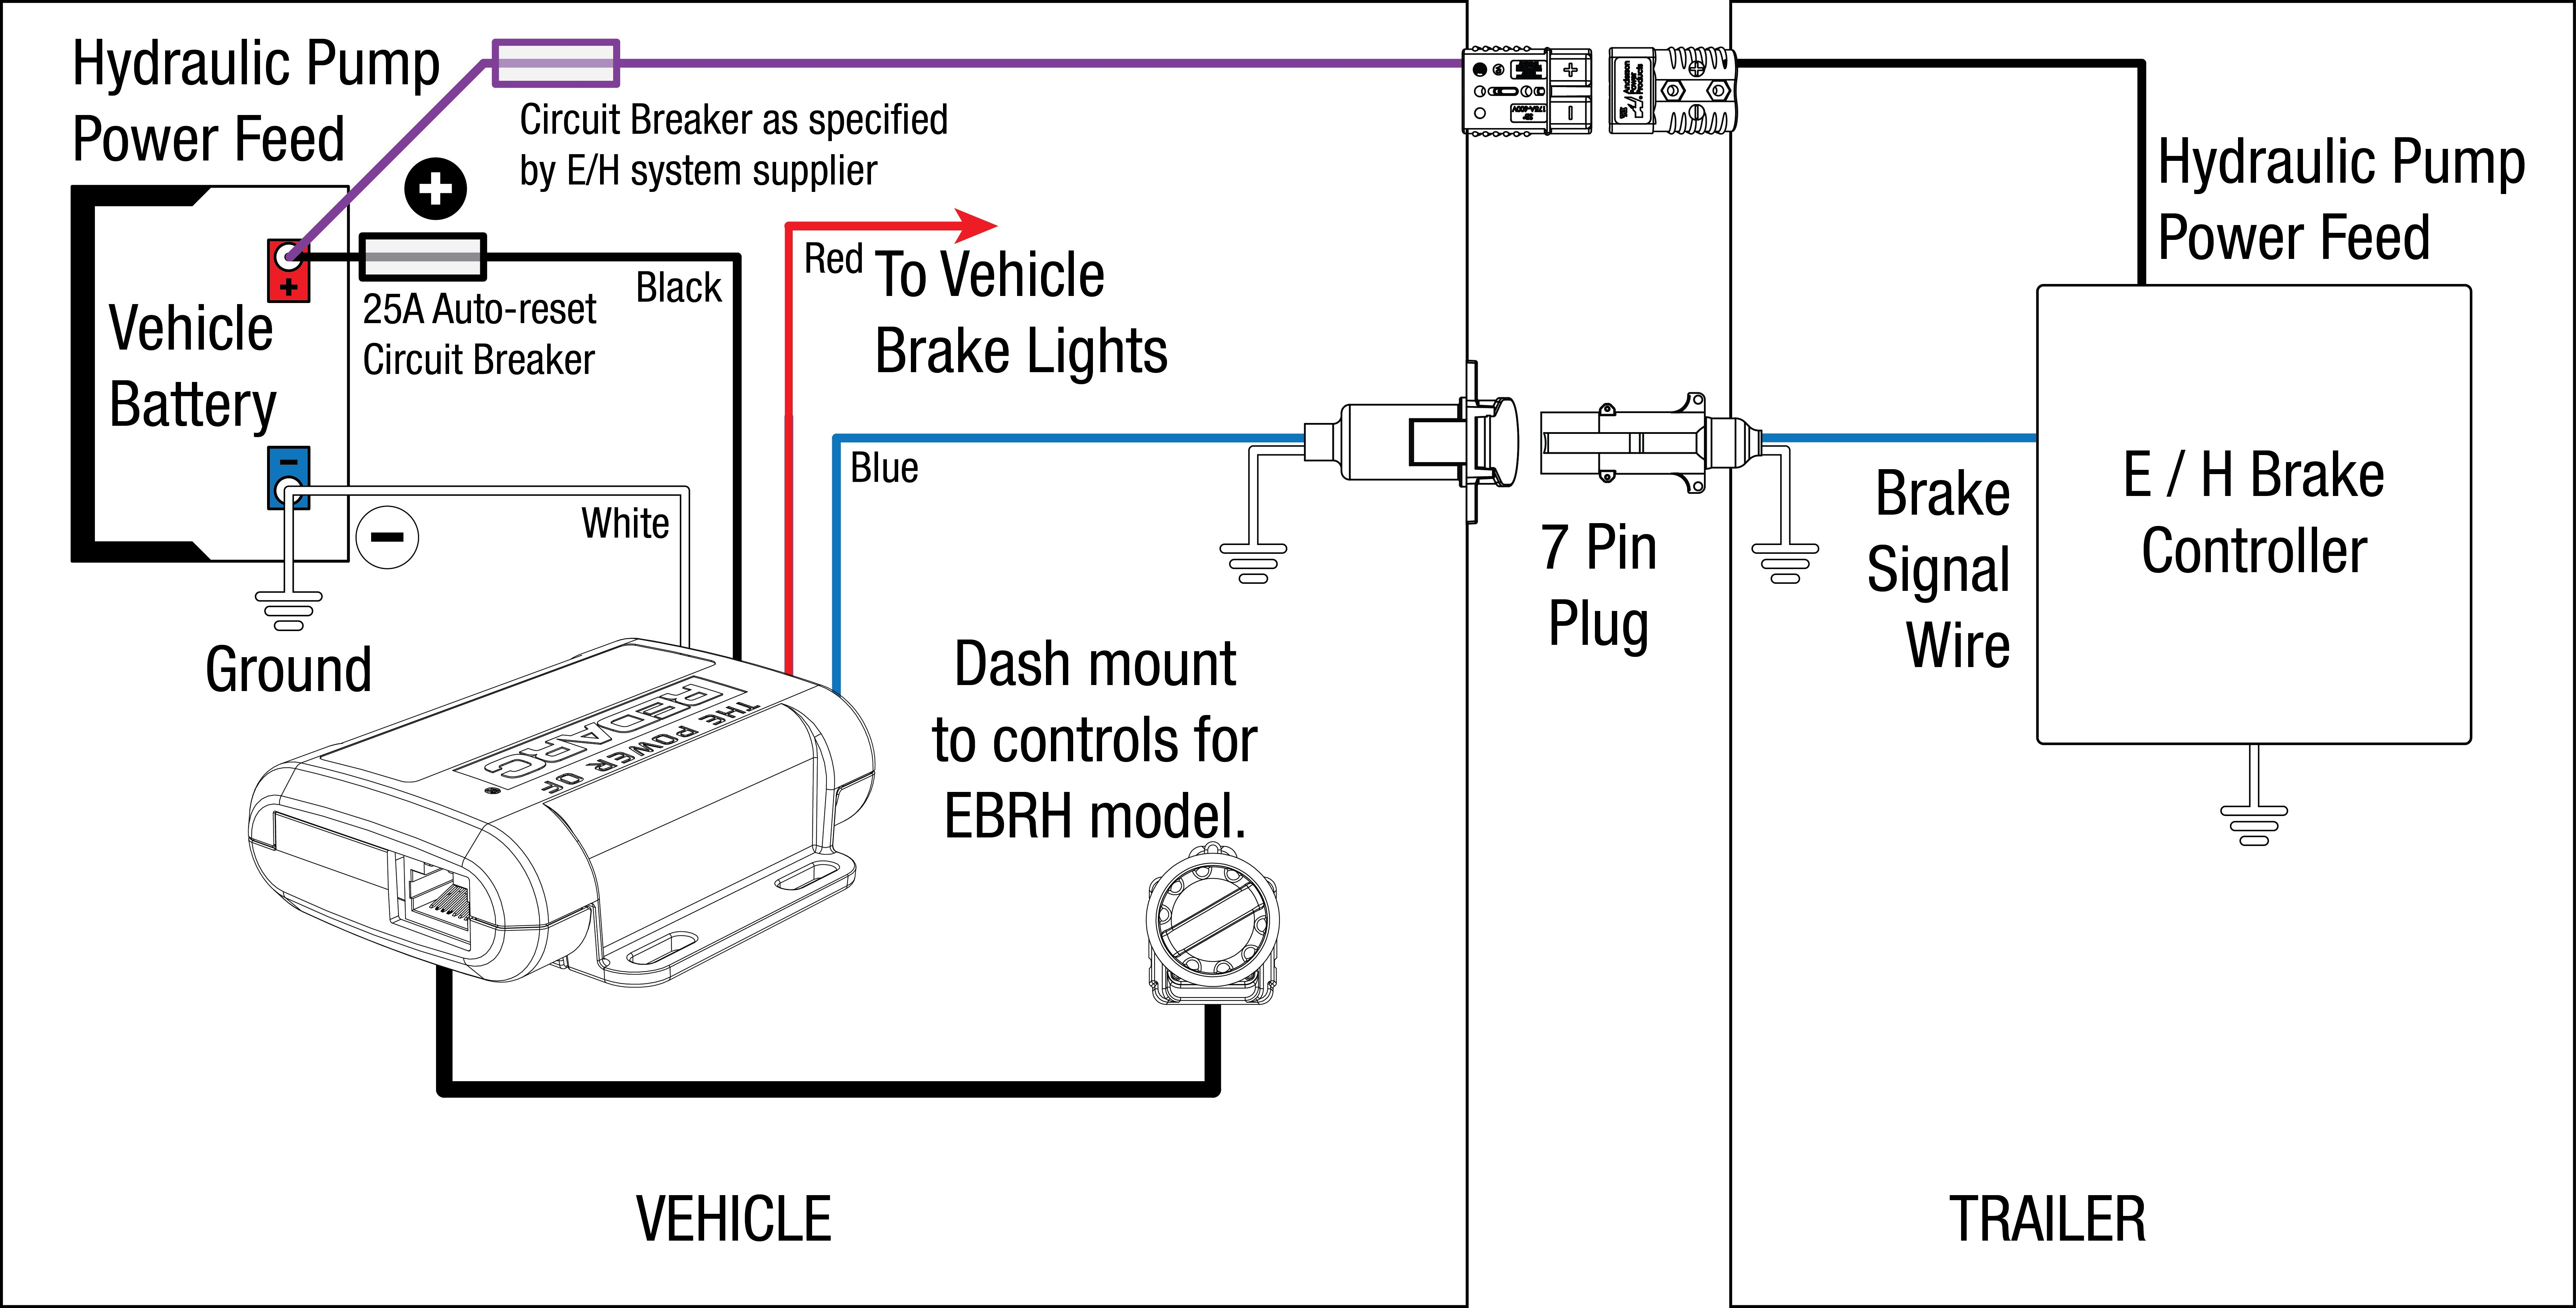 Breakaway Trailer ke Wiring Diagram Trailer Breakaway Switch ... on trailer breakaway wiring with no charger, dual battery system wiring diagram, trailer lights wiring-diagram, fantastic fan wiring diagram, brake vacuum pump wiring diagram, trailer jack parts diagram, trailer building diagrams, brake box wiring diagram, trailer wiring color code, ford 7 pin wiring diagram, rv electrical system wiring diagram, ford f-150 starter wiring diagram, trailer coupler diagram, electric brake wiring diagram, brake controller wiring diagram, trailer breakaway switch installation, rv connector wiring diagram, pod brake control wiring diagram, trailer breakaway system,